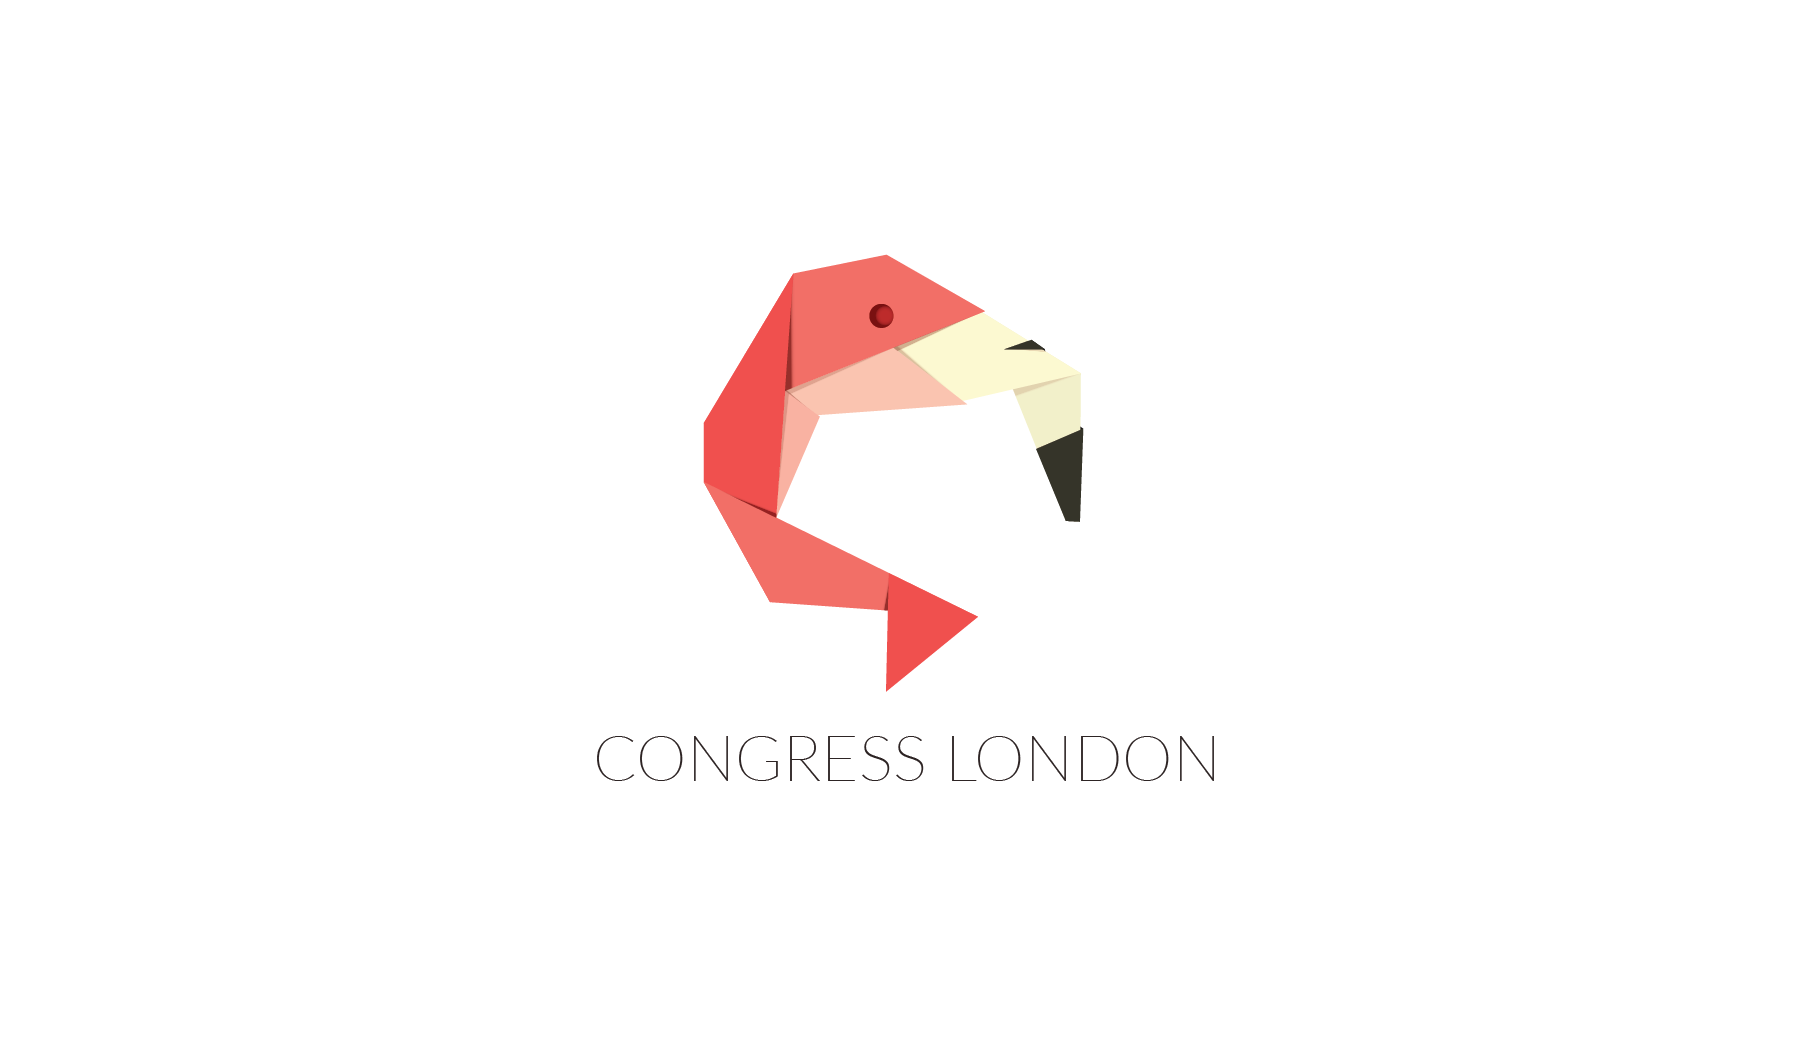 CONGRESS LONDON | THE VALUE OF INVESTING IN YOURSELF